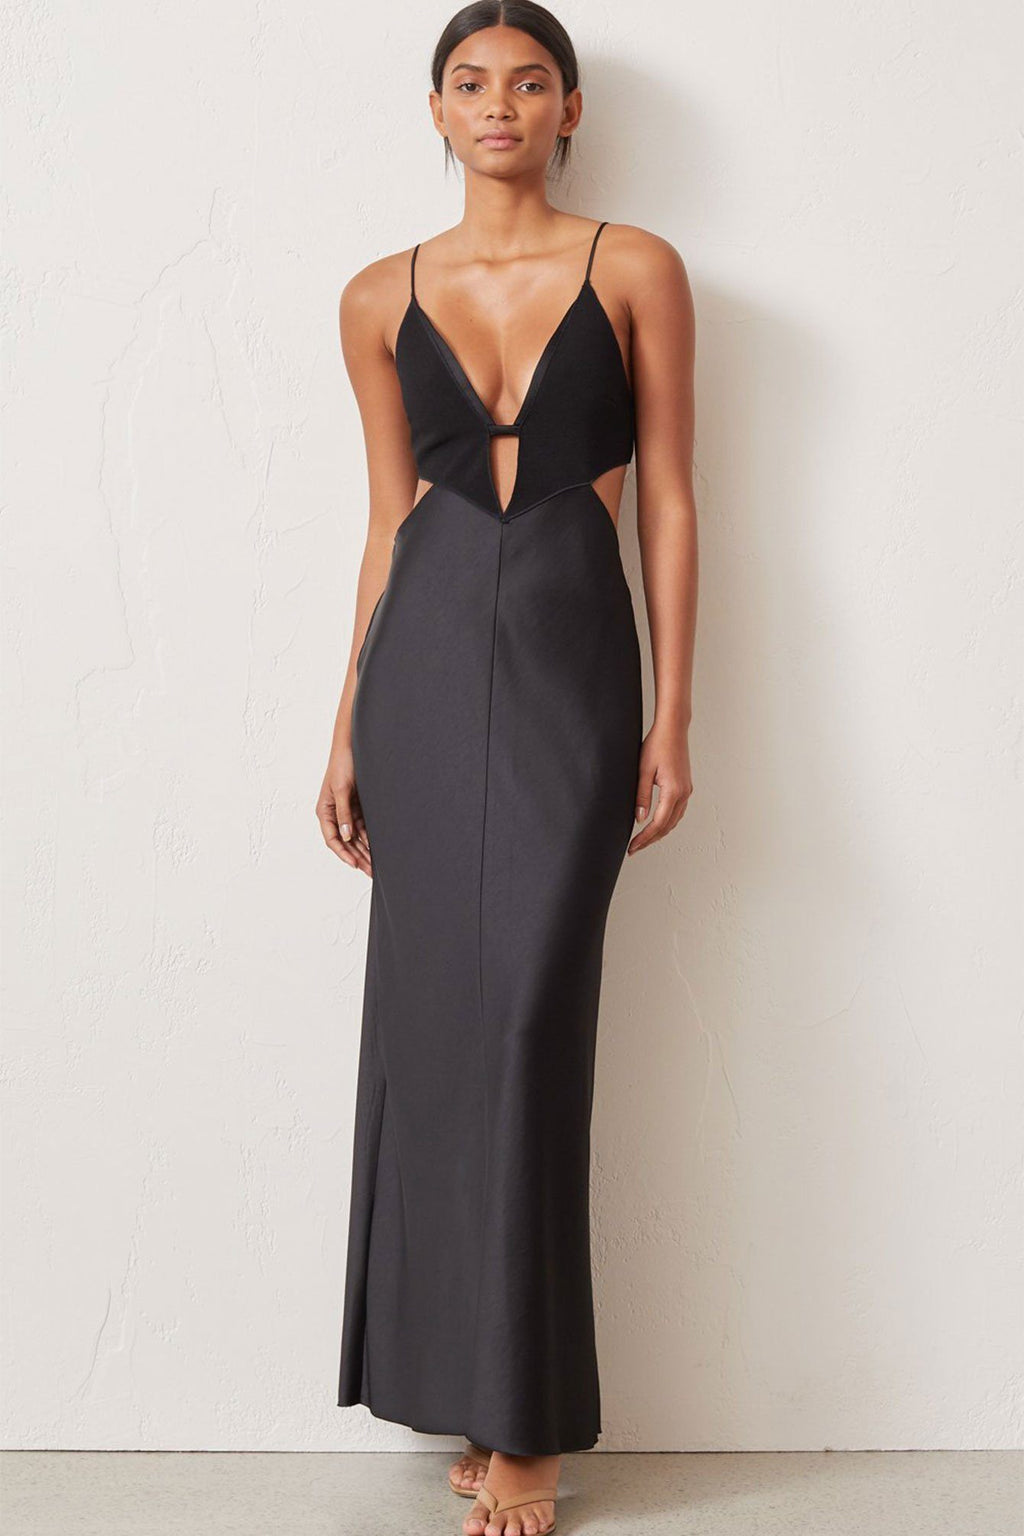 BEC + BRIDGE | Seraphine Plunge Dress - Black